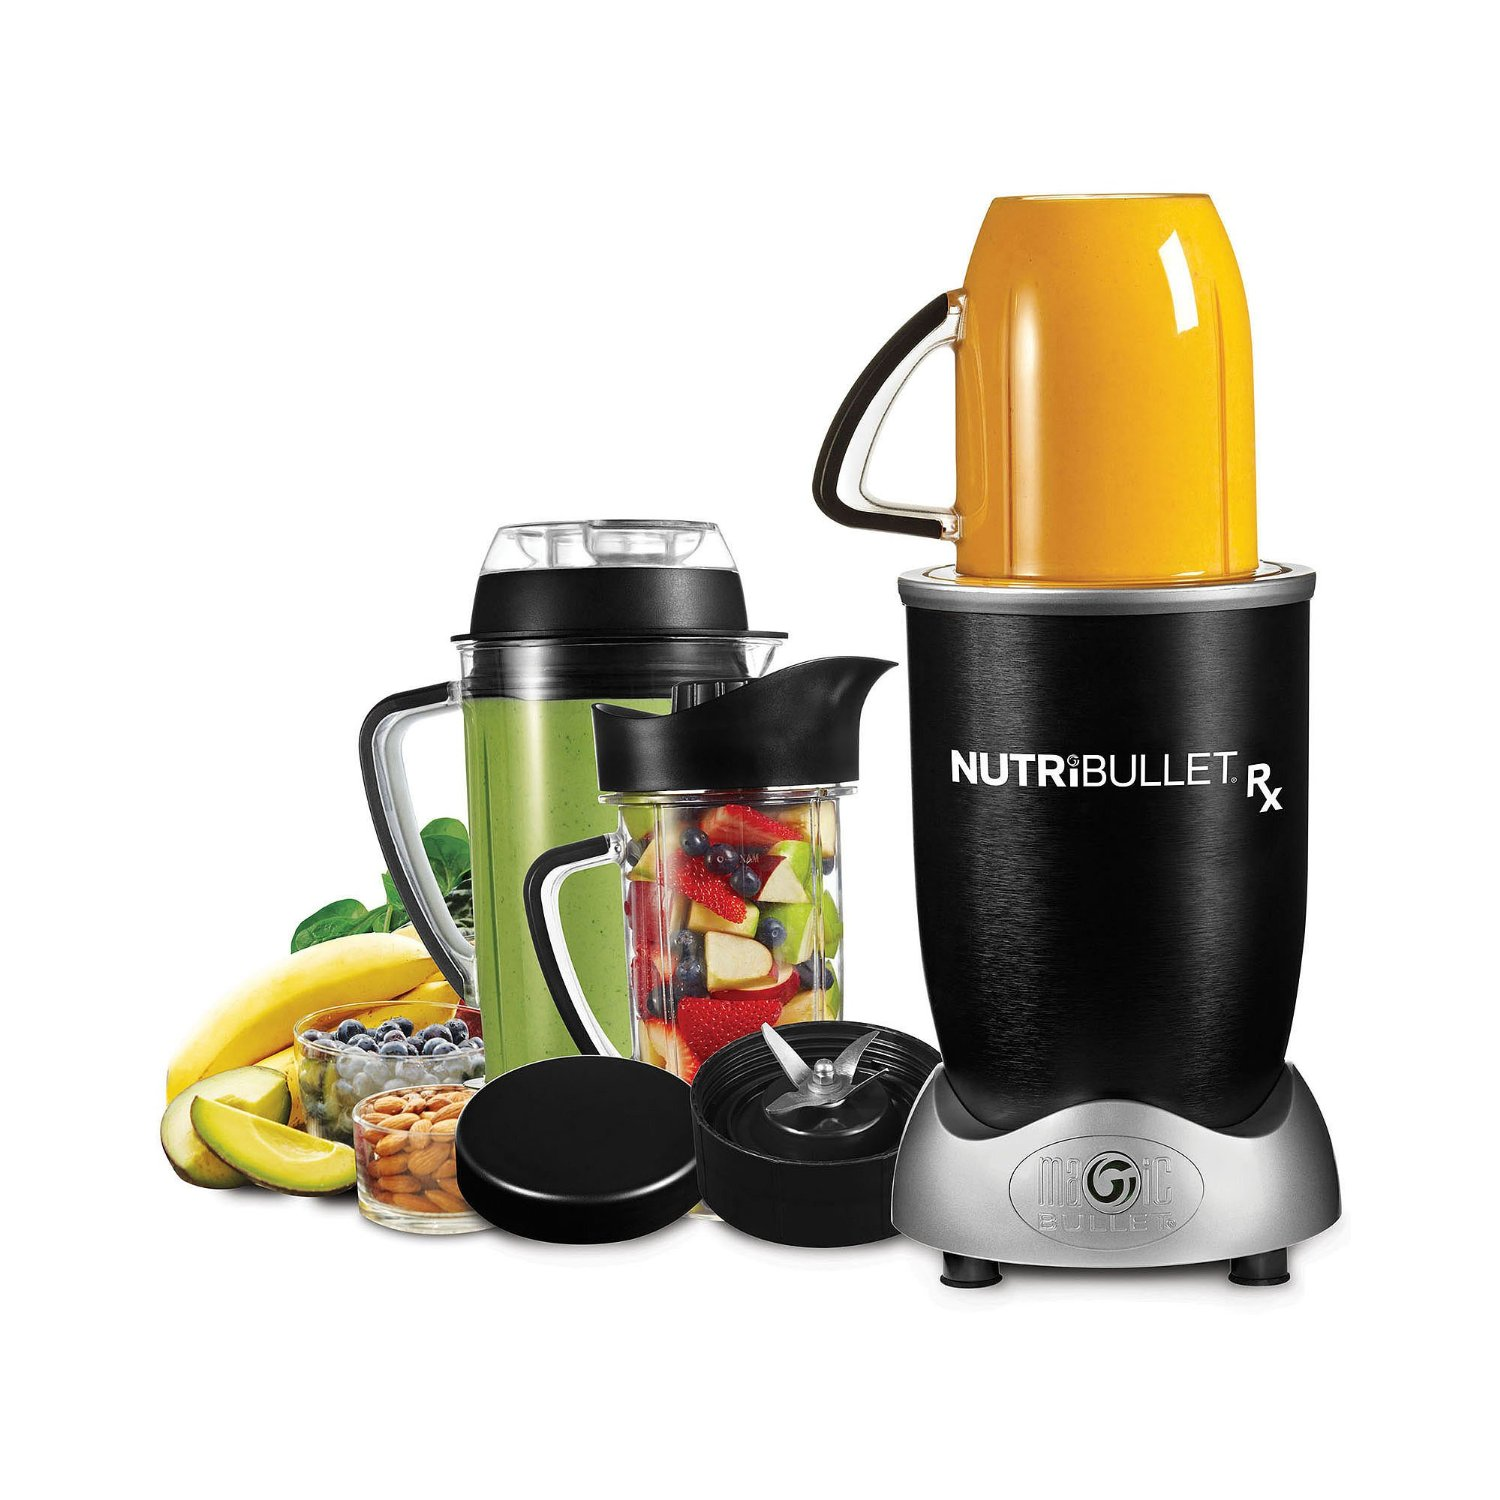 Magic Bullet Nutribullet RX Personal Blender